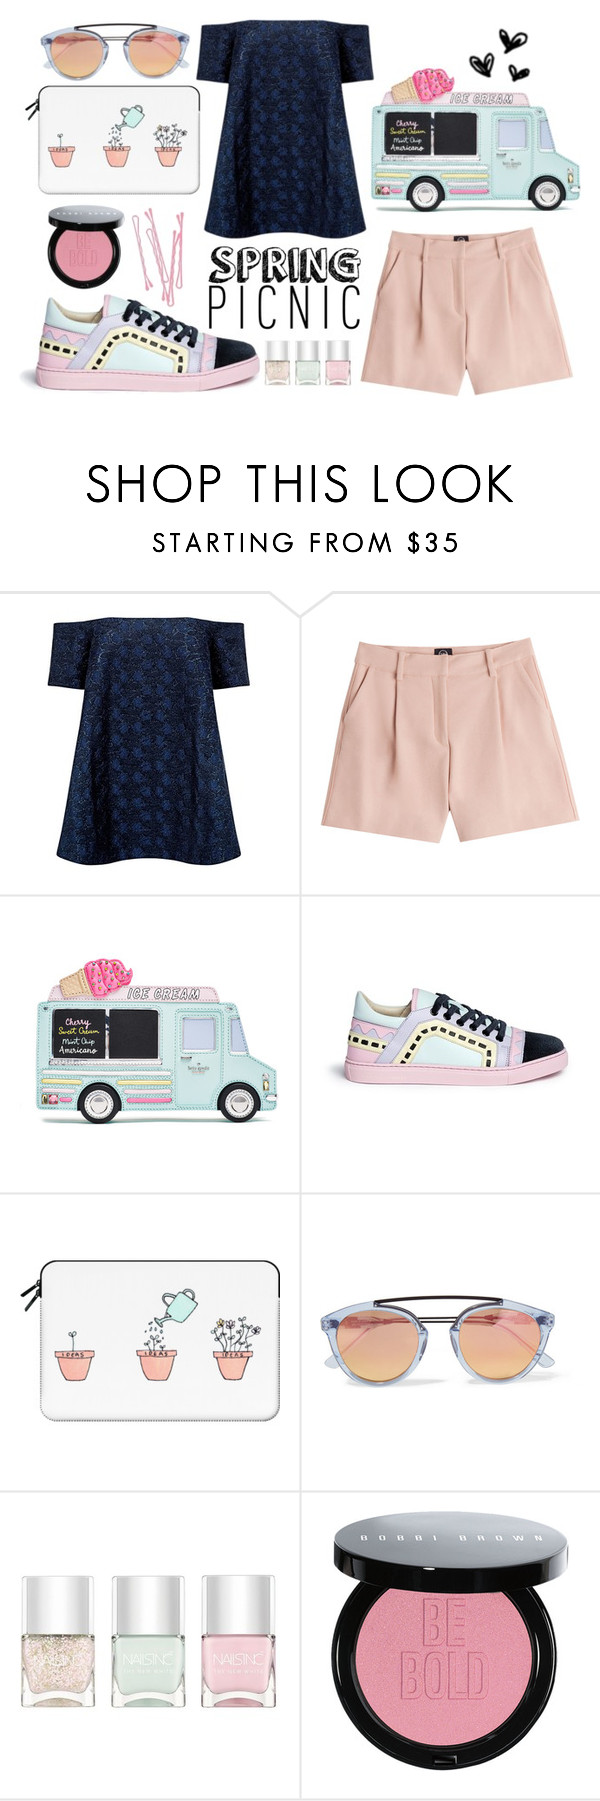 """""""I Eat Ice Cream in Spring"""" by sandraindriani ❤ liked on Polyvore featuring Edit, McQ by Alexander McQueen, Sophia Webster, Casetify, Westward Leaning, Nails Inc., Bobbi Brown Cosmetics and BOBBY"""